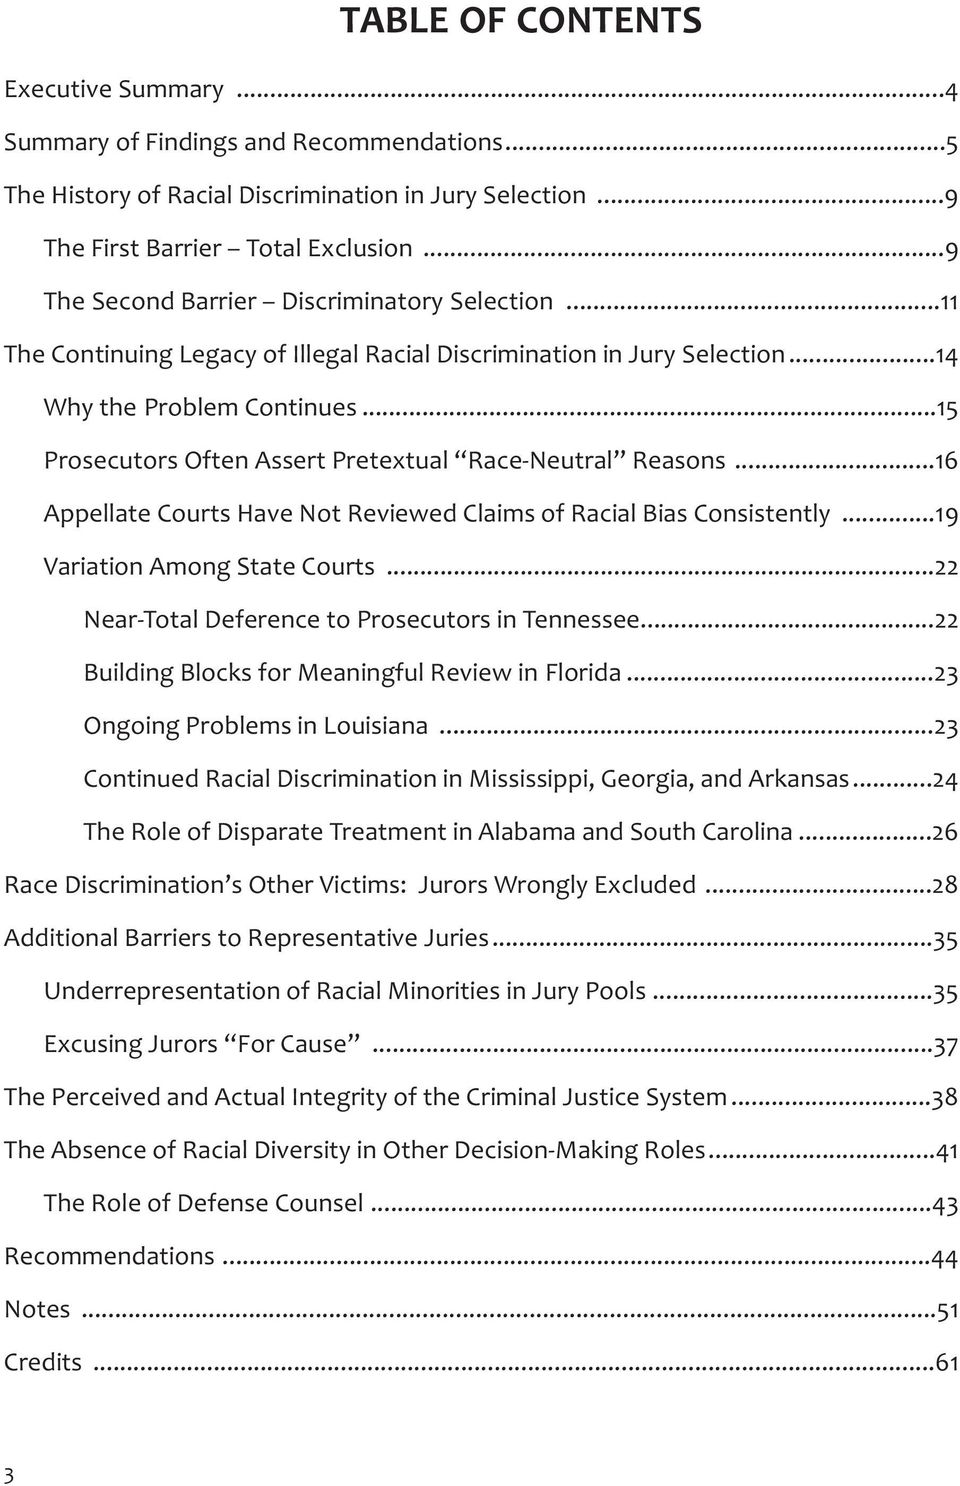 ..15 Prosecutors Often Assert Pretextual Race-Neutral Reasons...16 Appellate Courts Have Not Reviewed Claims of Racial Bias Consistently...19 Variation Among State Courts.